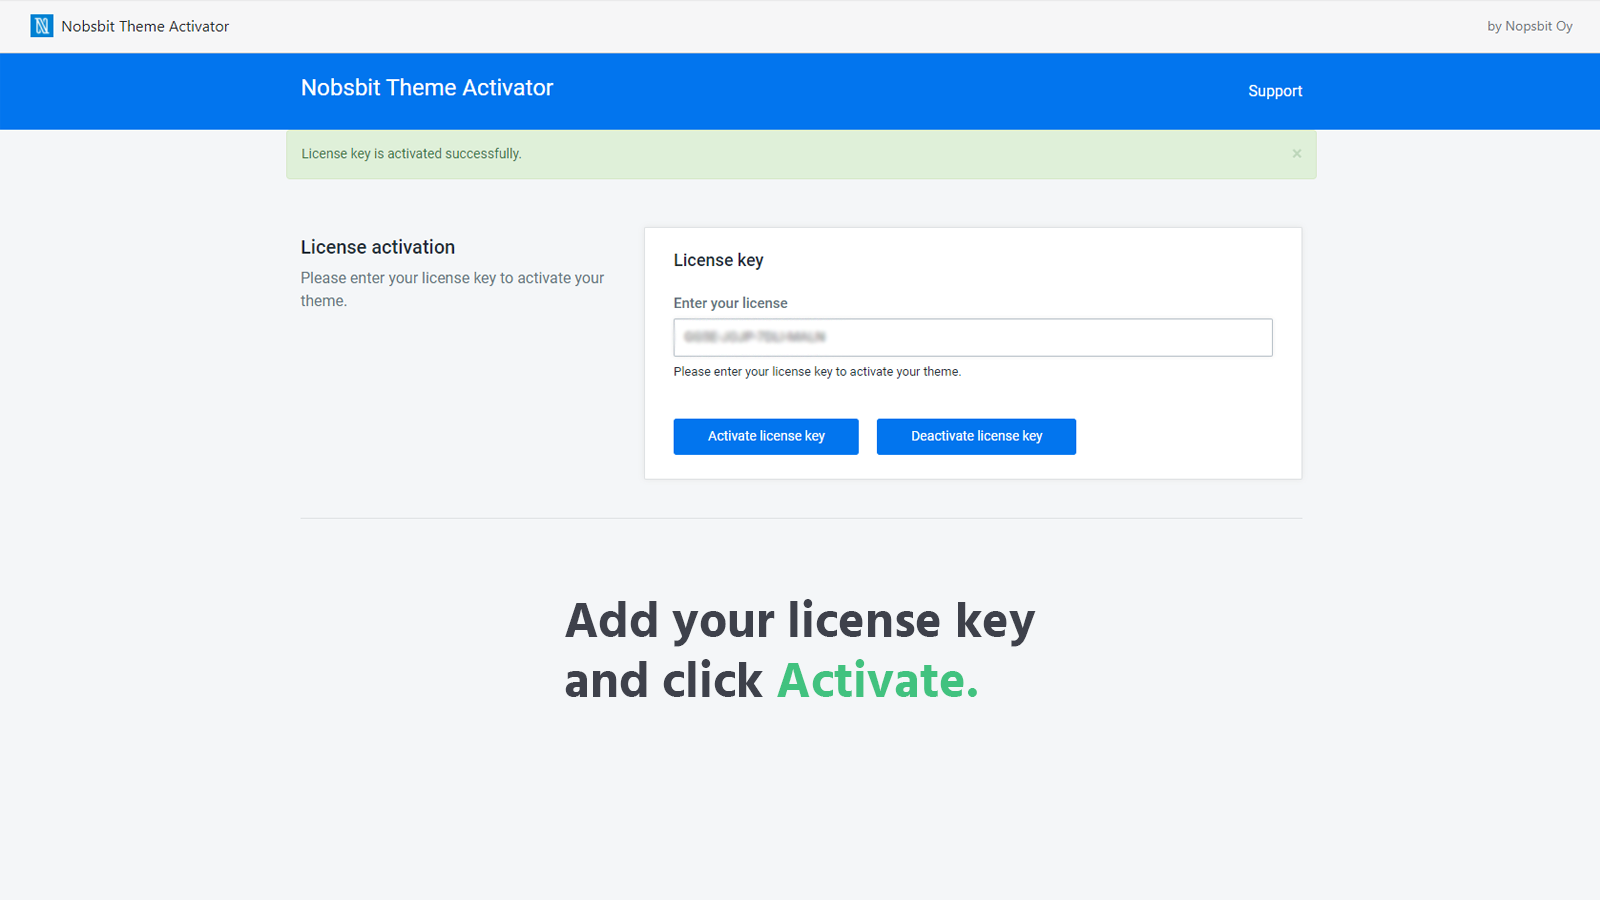 Add your license key and click activate